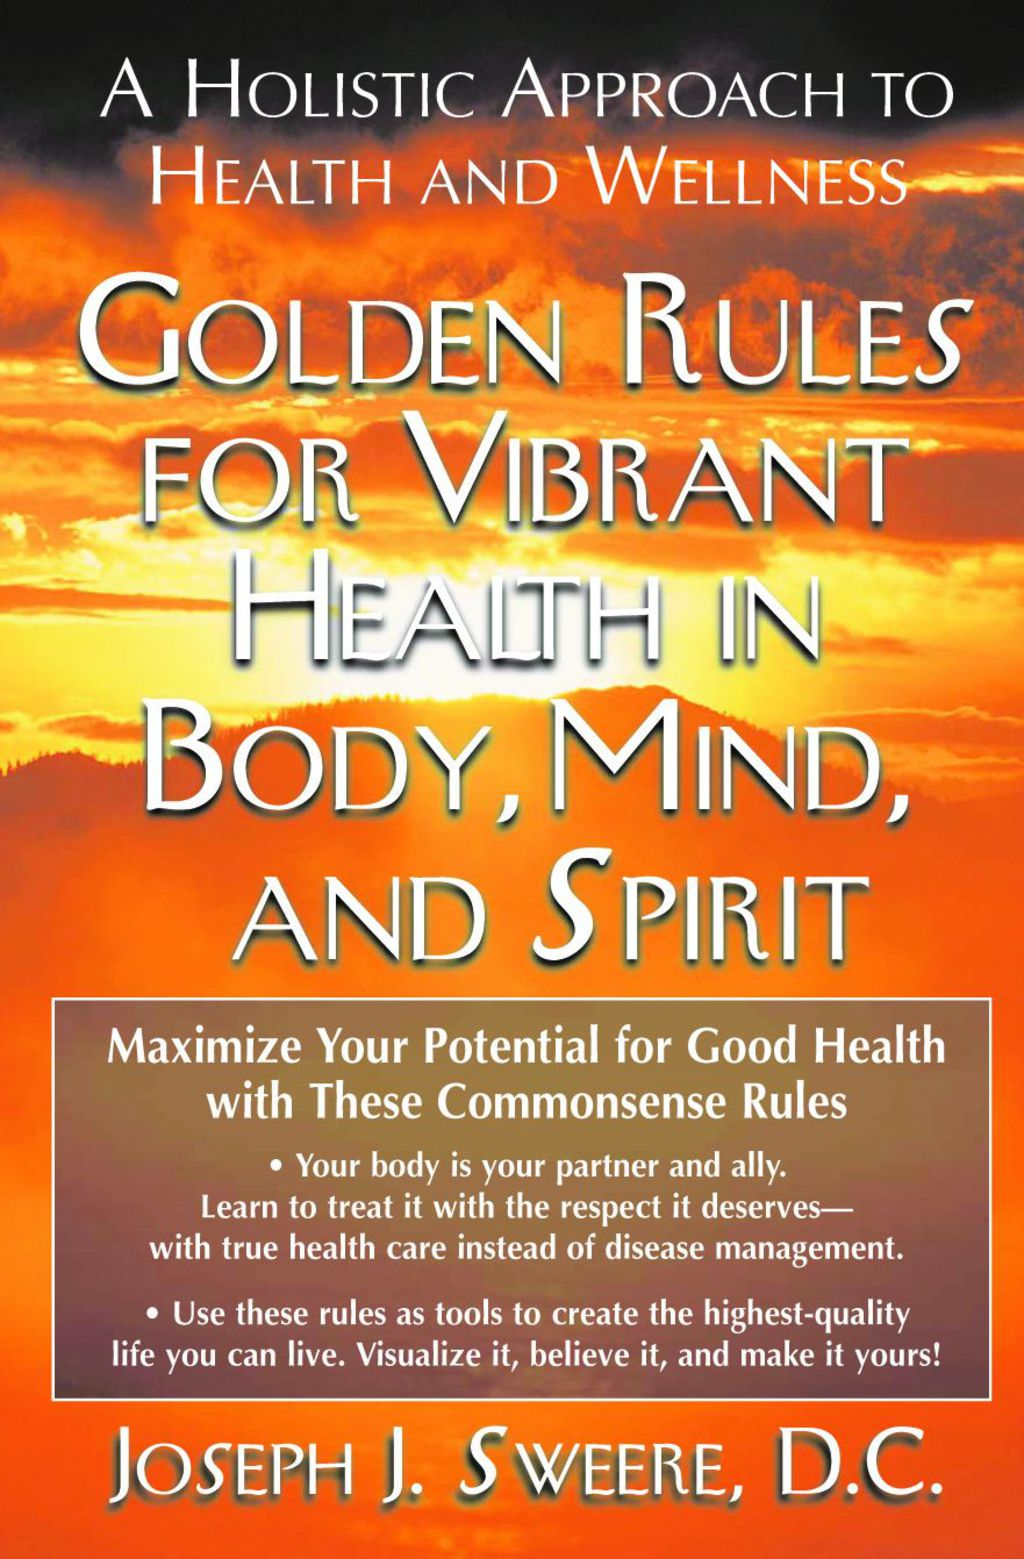 Golden Rules for Vibrant Health in Body, Mind, and Spirit (ebook) eBooks